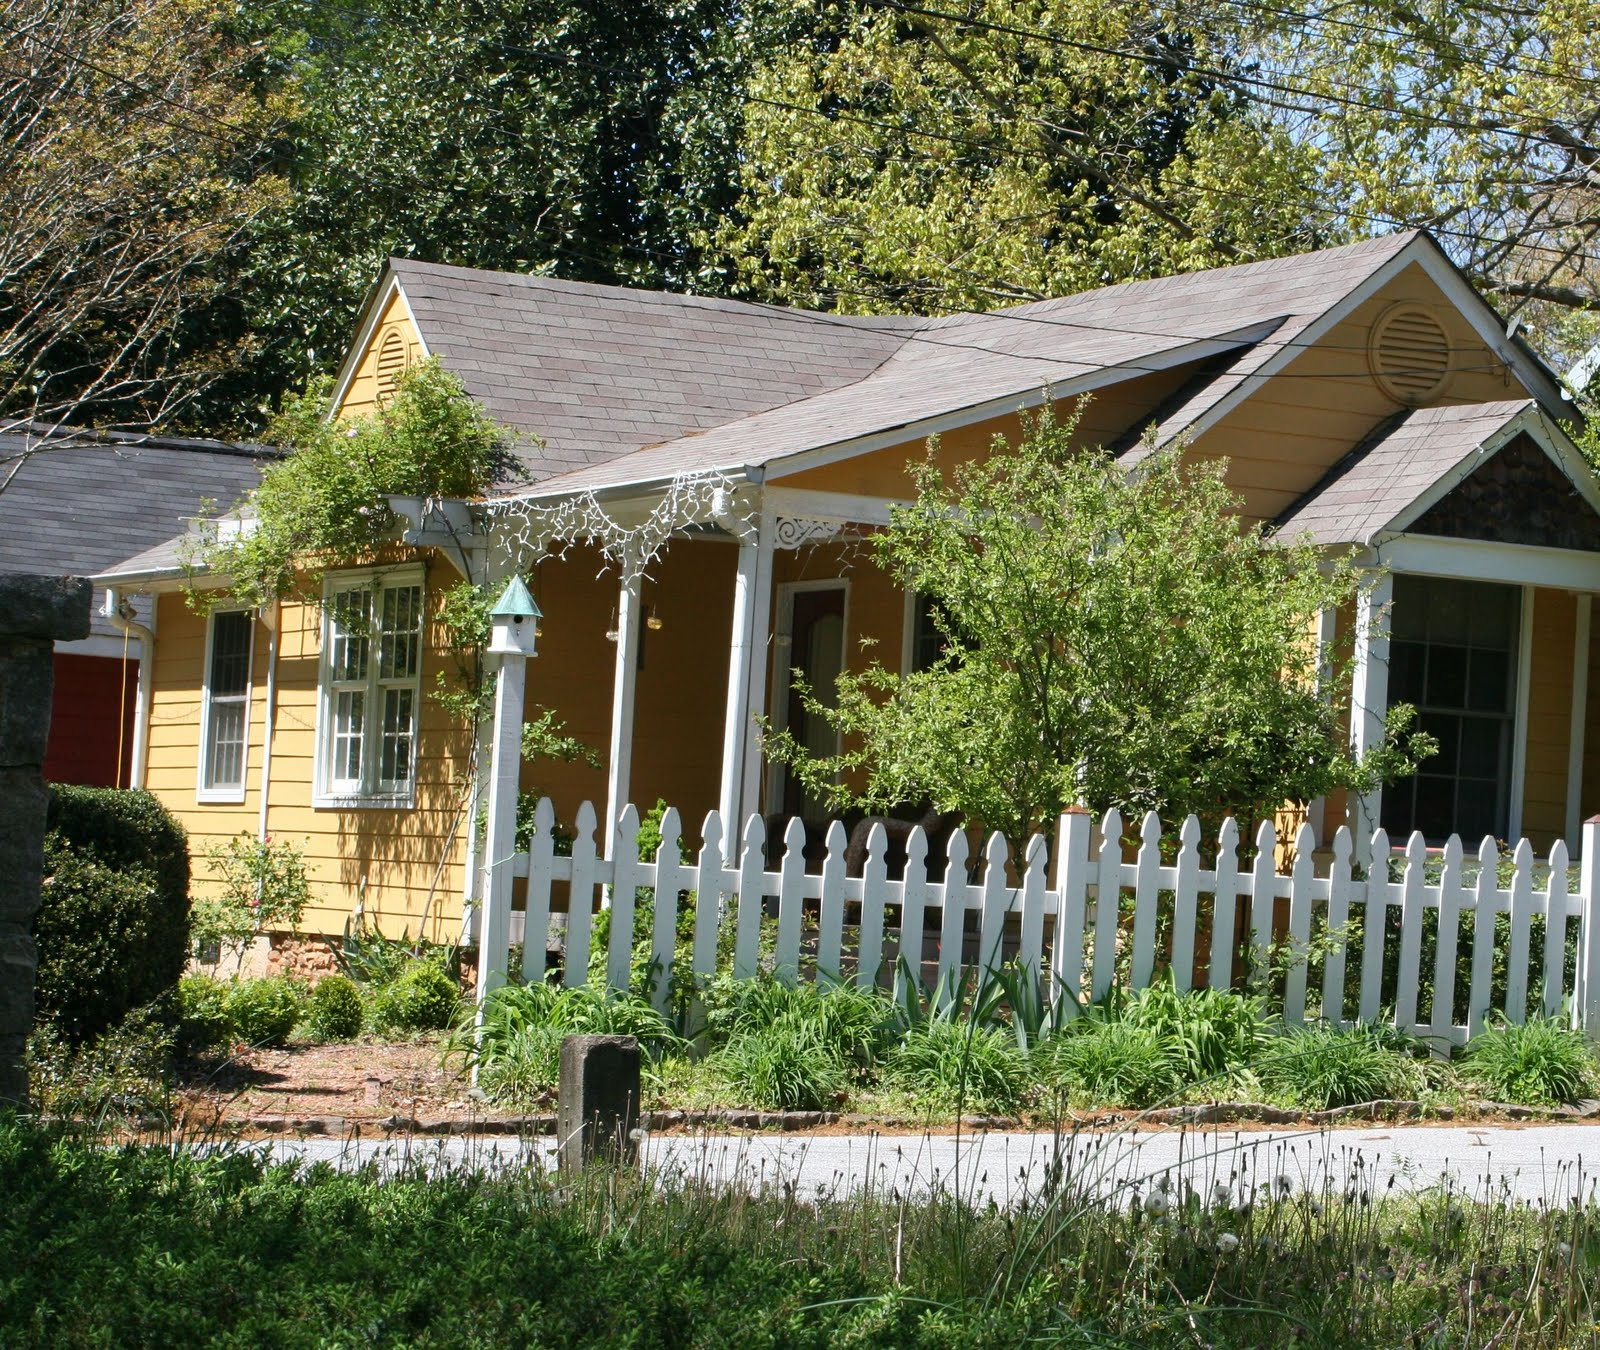 Ontario Park Bungalow Blog: Pine Lake: The Blog: Cottages And Cabins And Bungalows, Oh